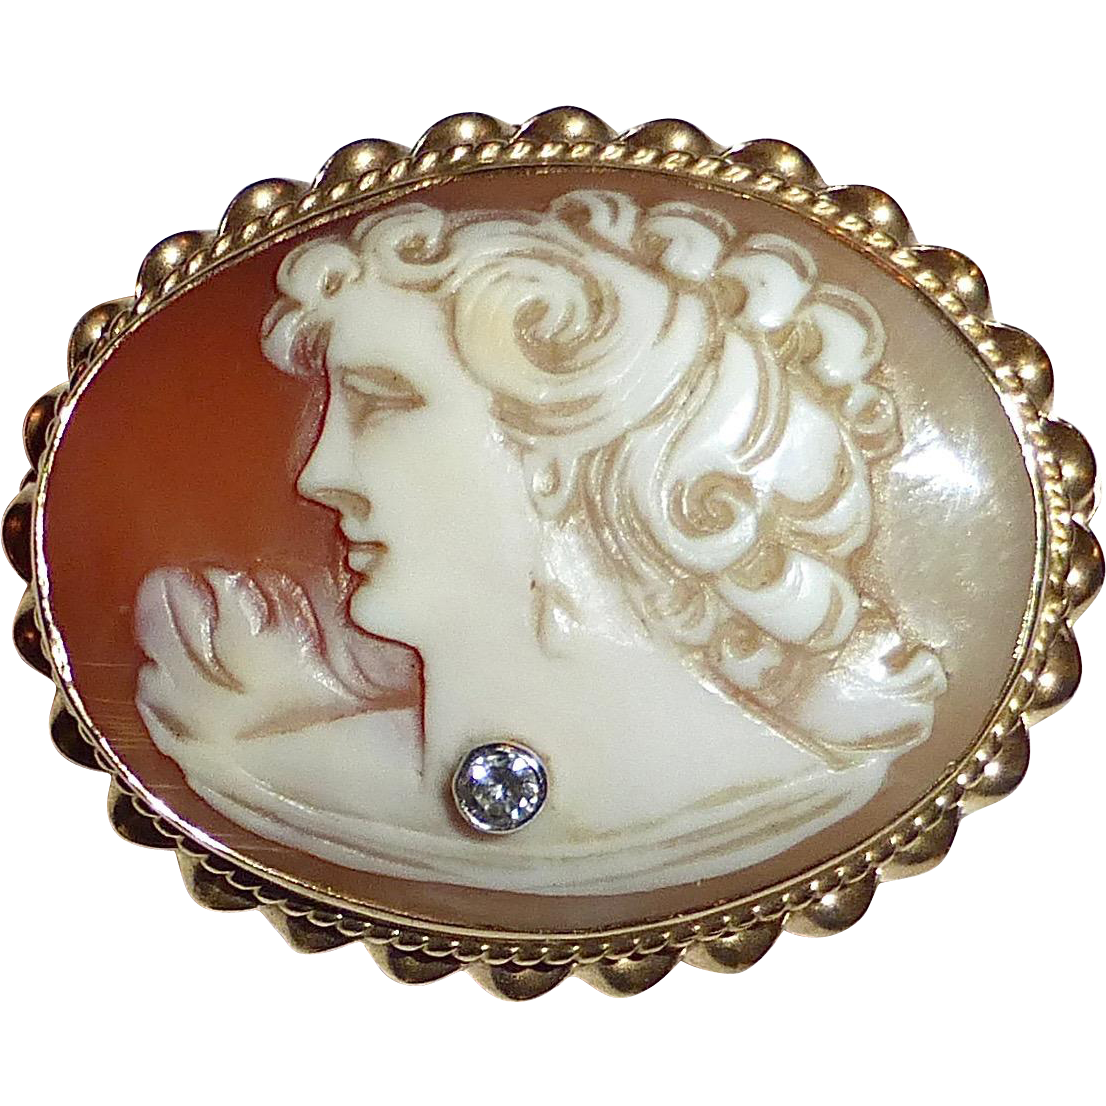 14k Shell Cameo Pendant/Brooch Woman w Diamond Necklace